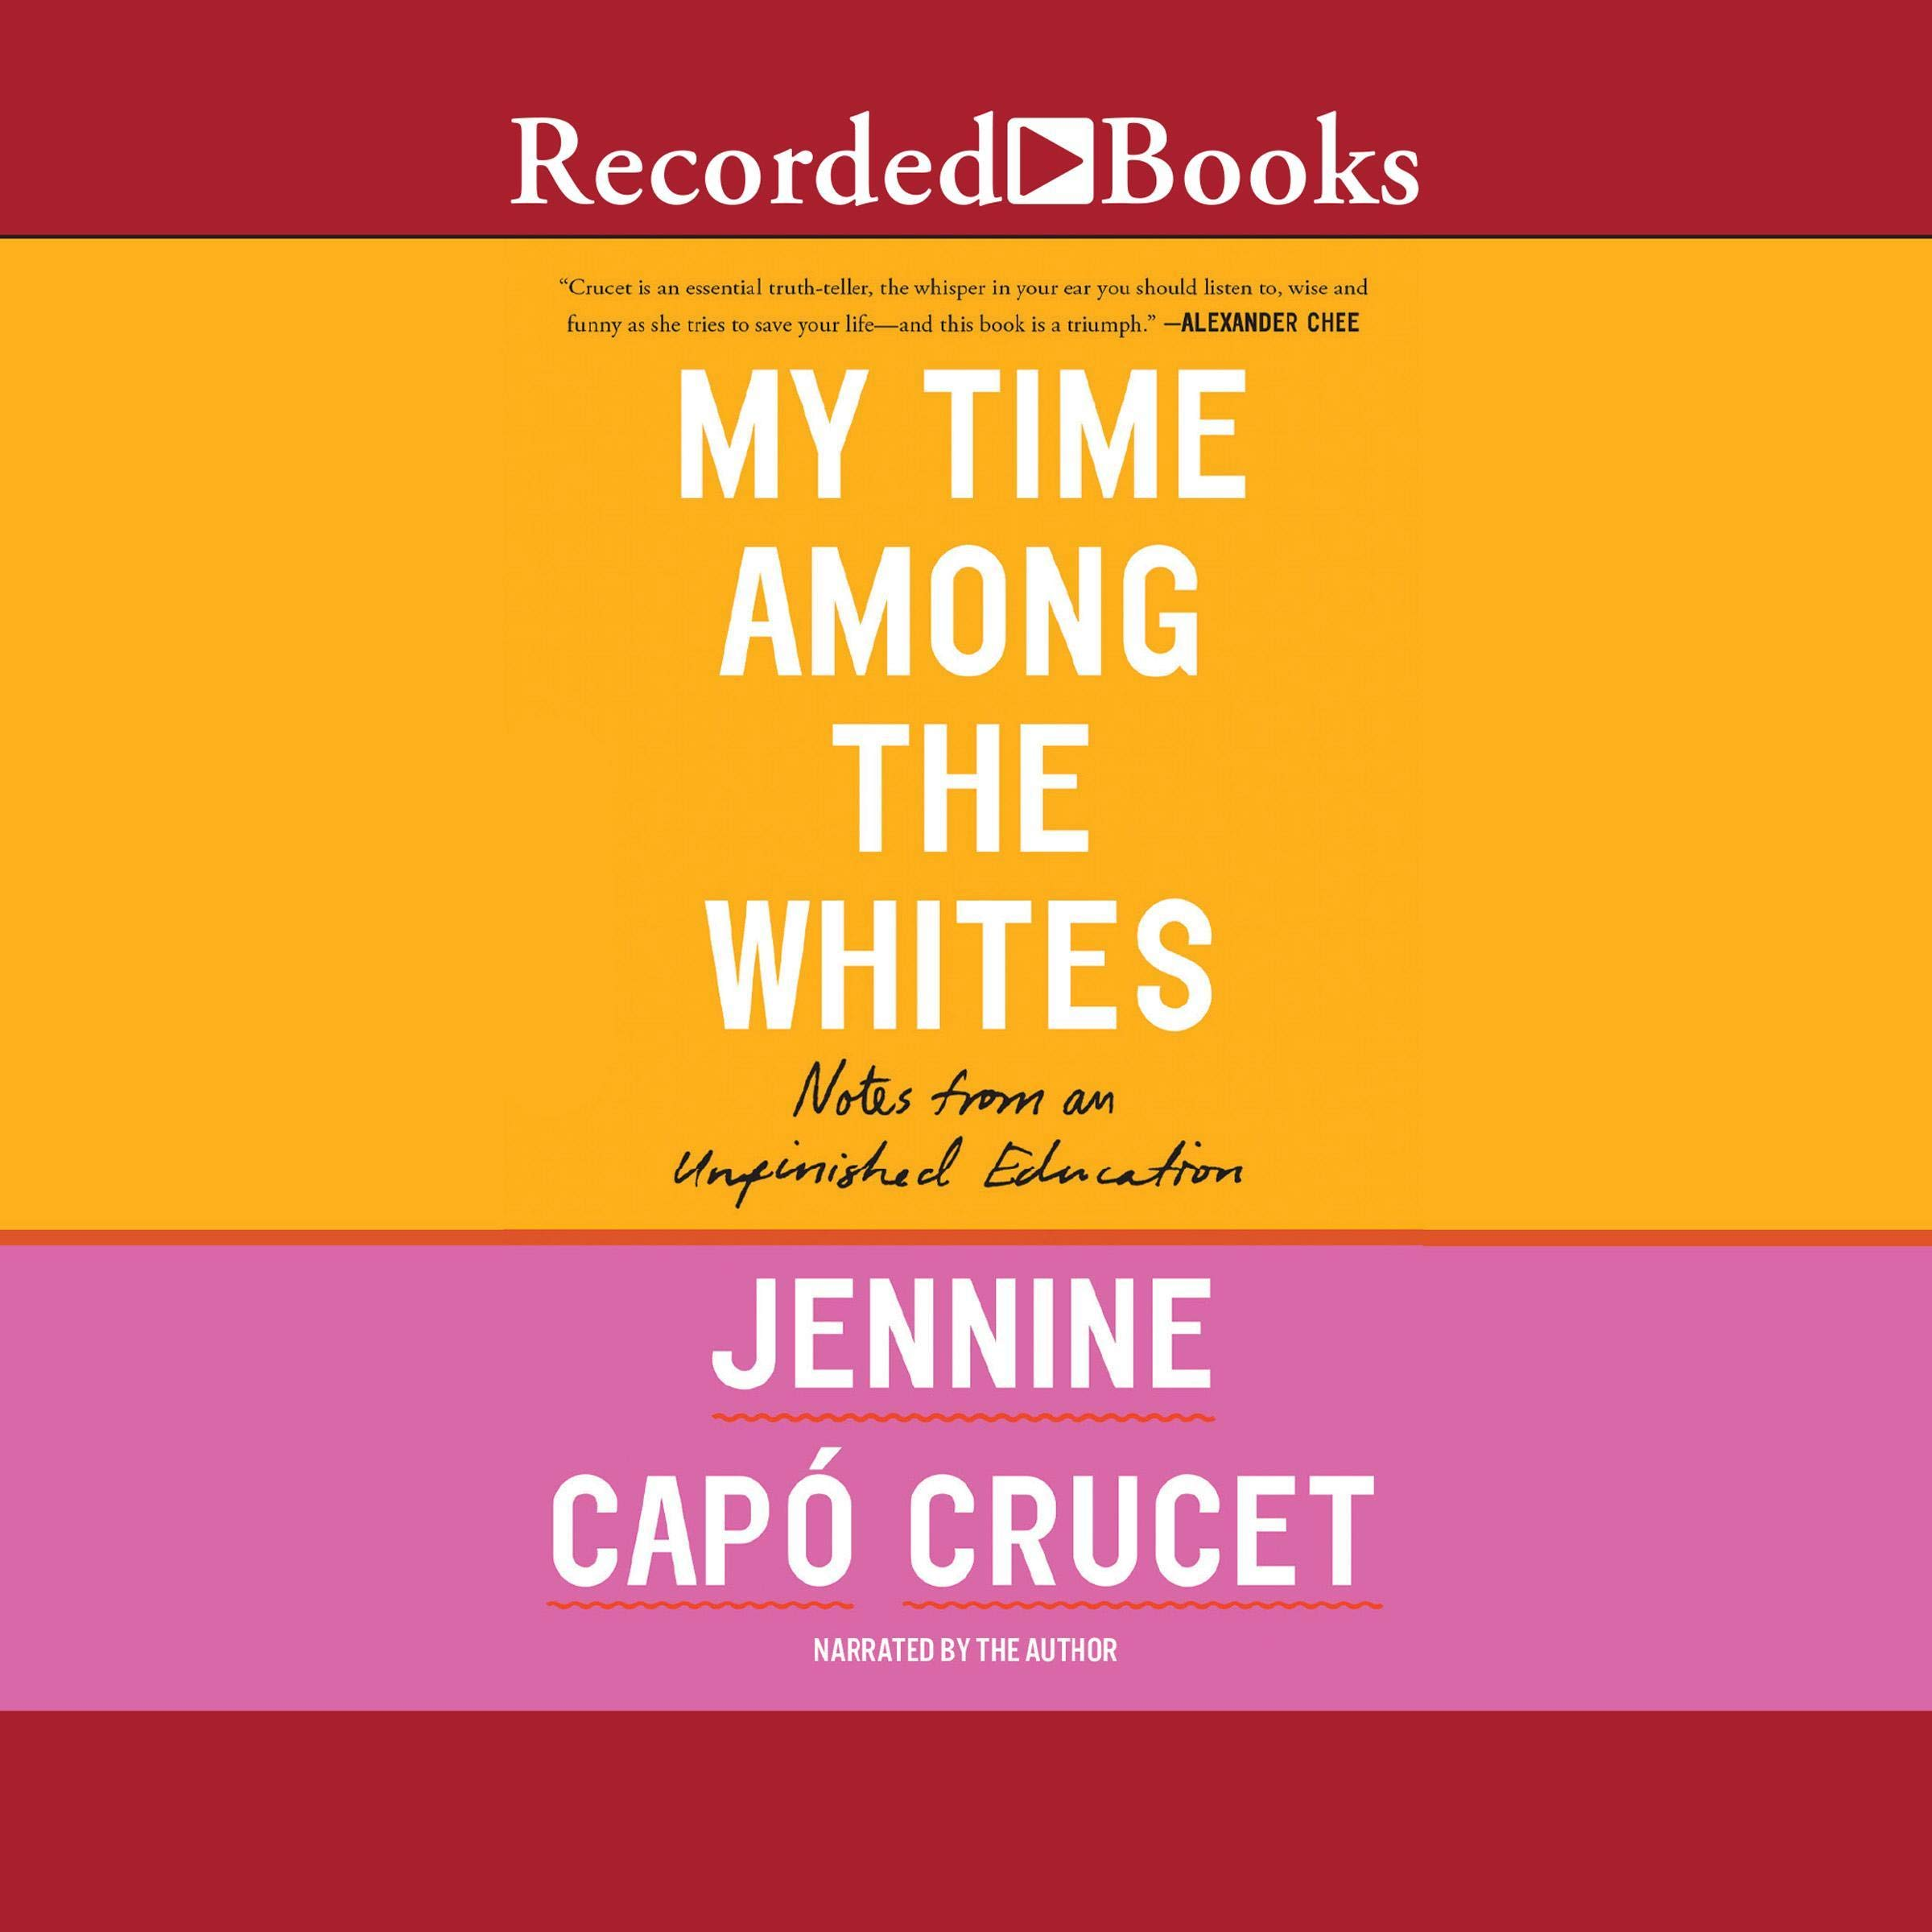 My Time Among The Whites  Notes From An Unfinished Education